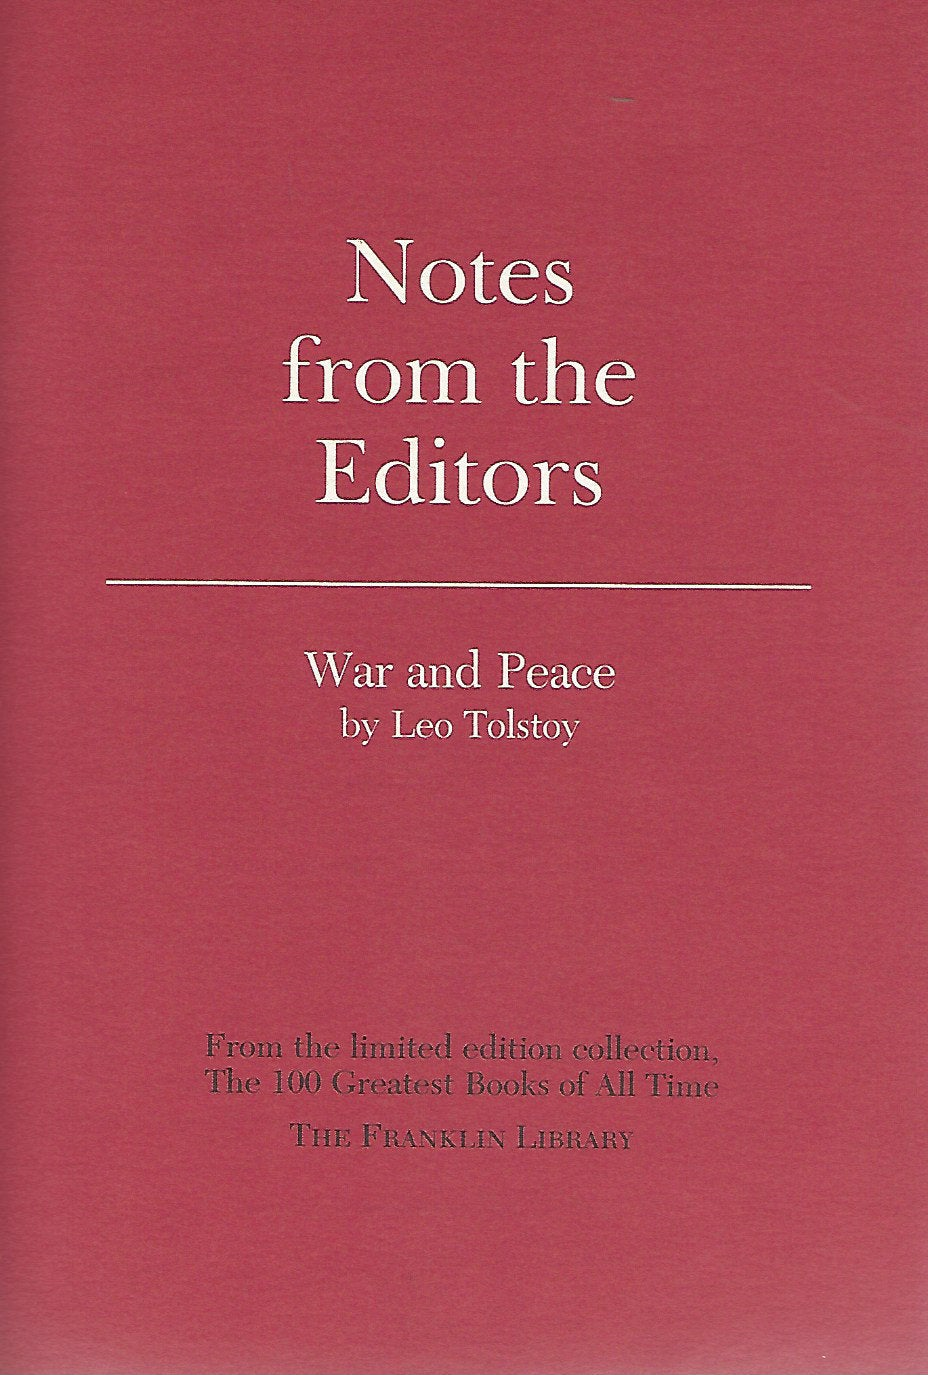 Franklin Library  Notes From the Editors; 100 Greatest Books; War and Peace by Leo Tolstoy